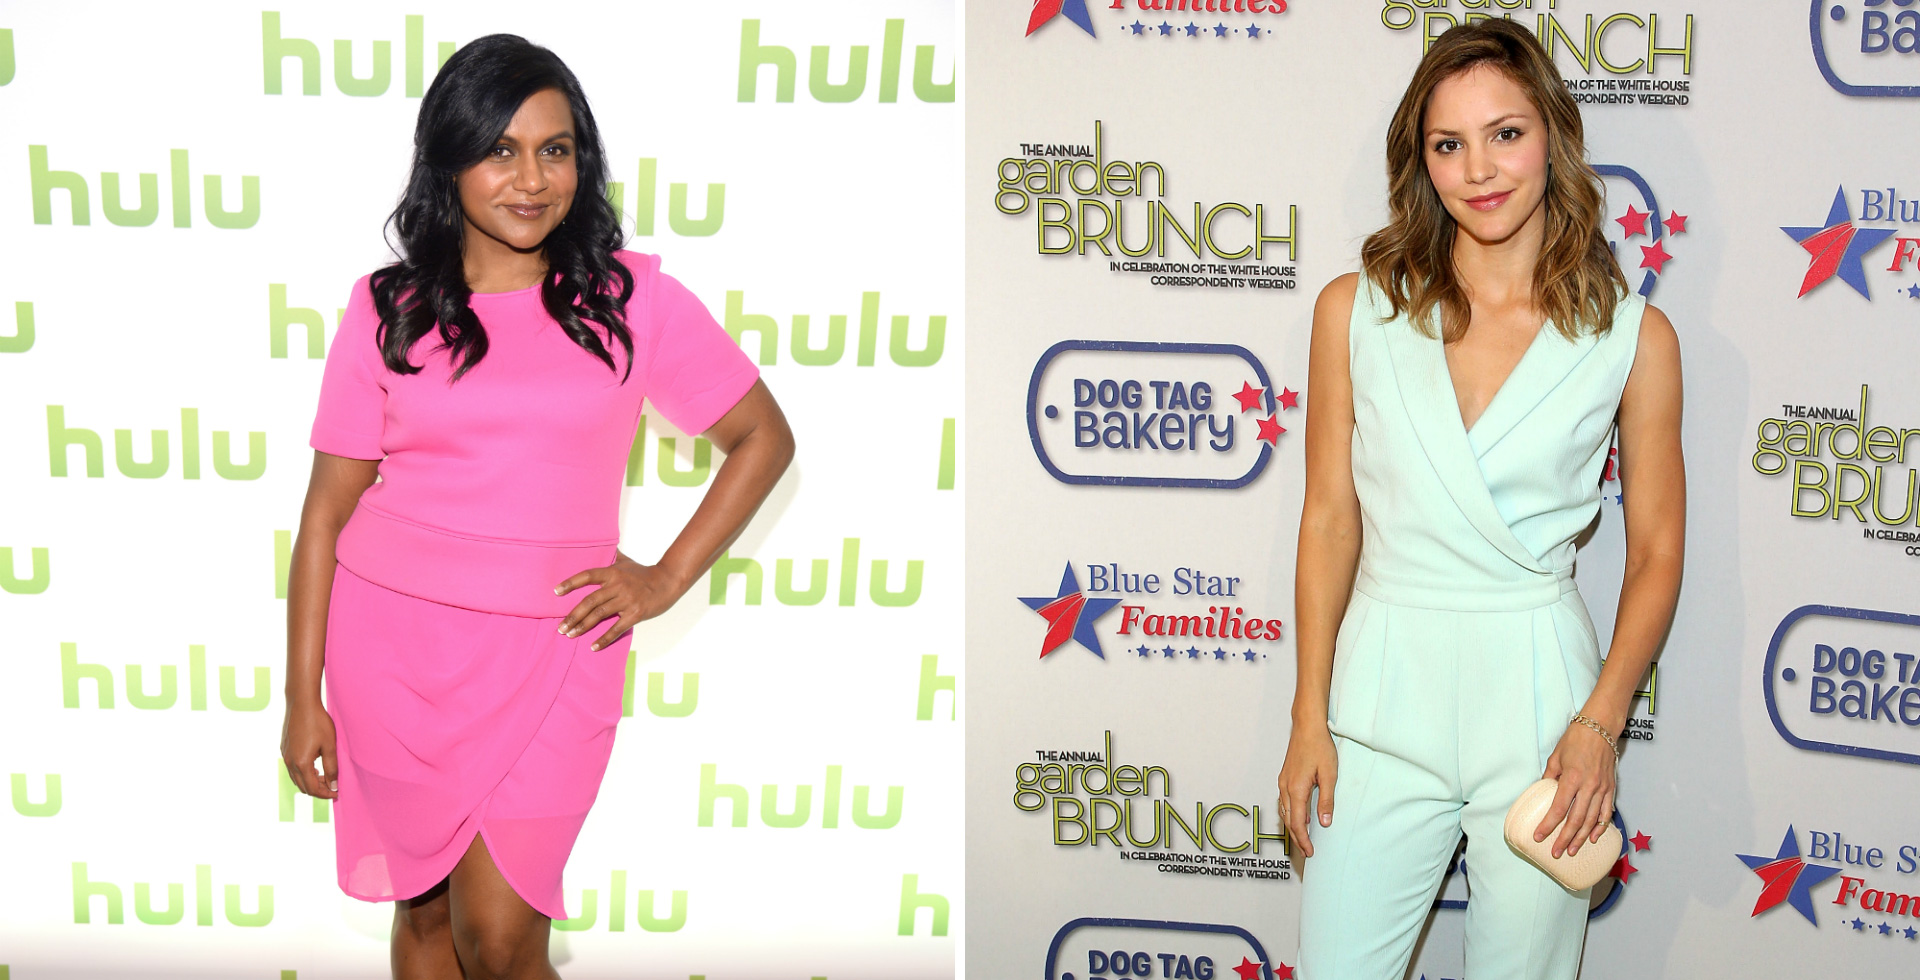 Friday's Fashion Obsessions: Mindy Kaling and Katharine McPhee